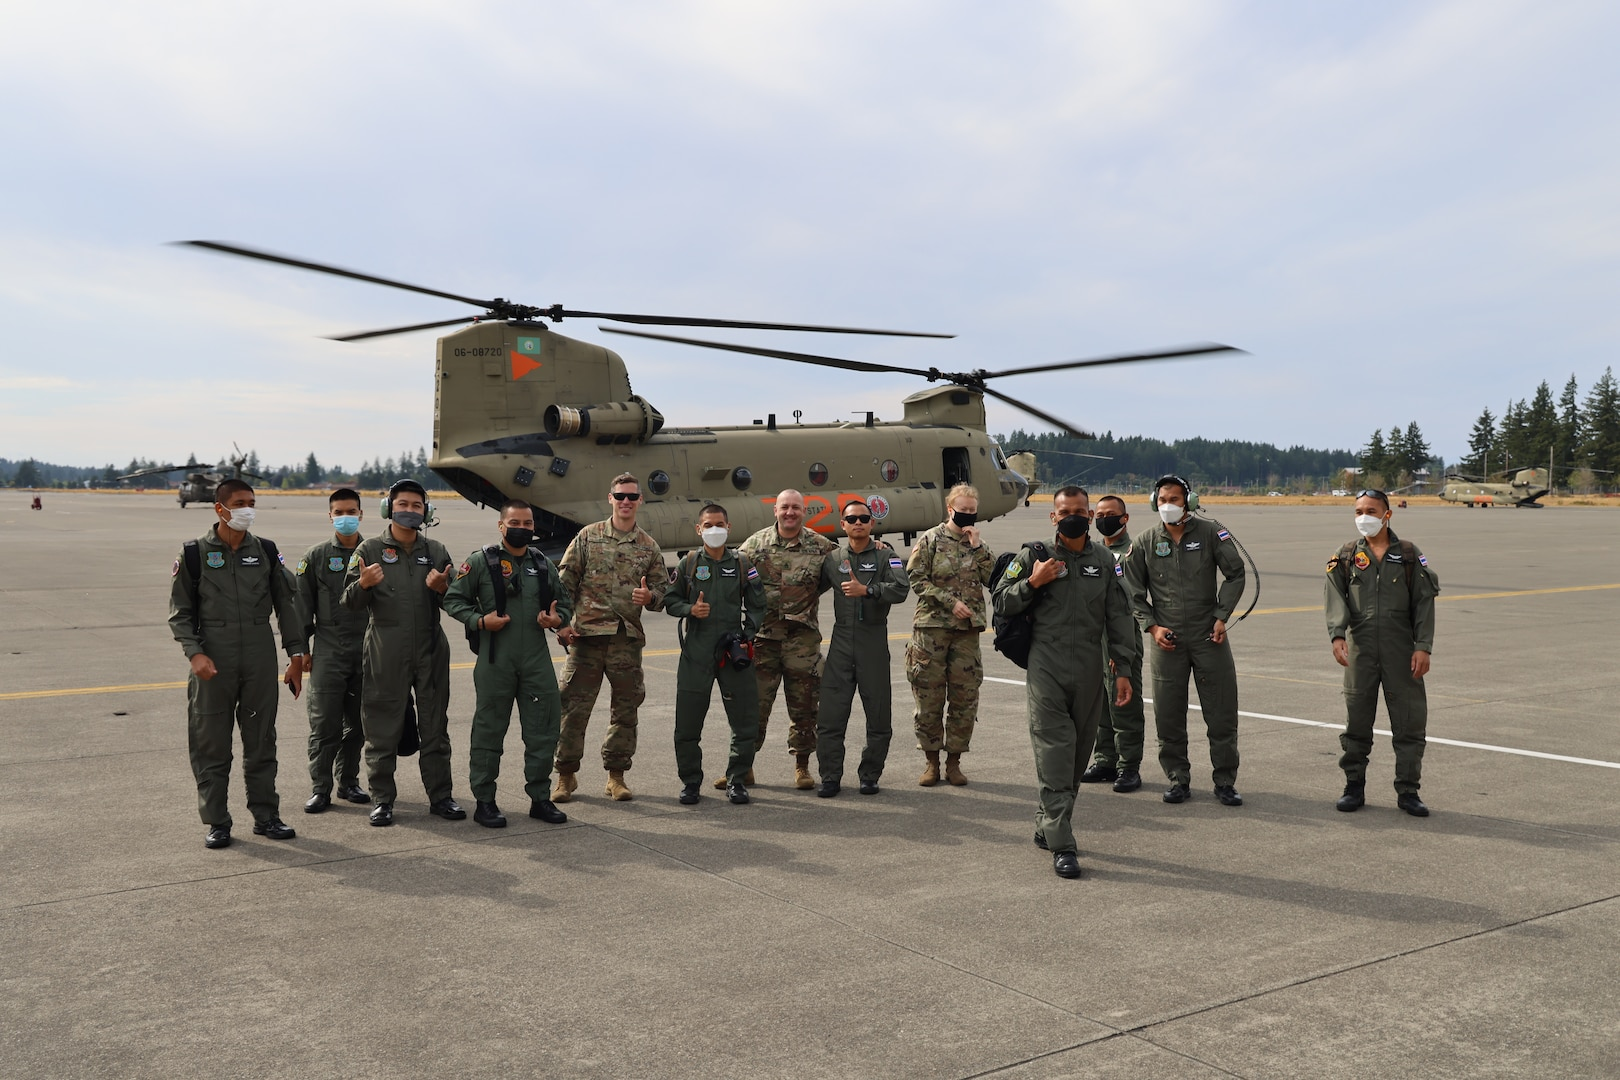 Members of the Royal Thai Army pose for a photo after a flight on a CH-47 Chinook helicopter Aug. 25, 2021 at Joint Base Lewis McChord, Washington state. The Thai Army aviators were taking part in a three-week aviation exchange with members of the Washington National Guard's 96th Aviation Troop Command.